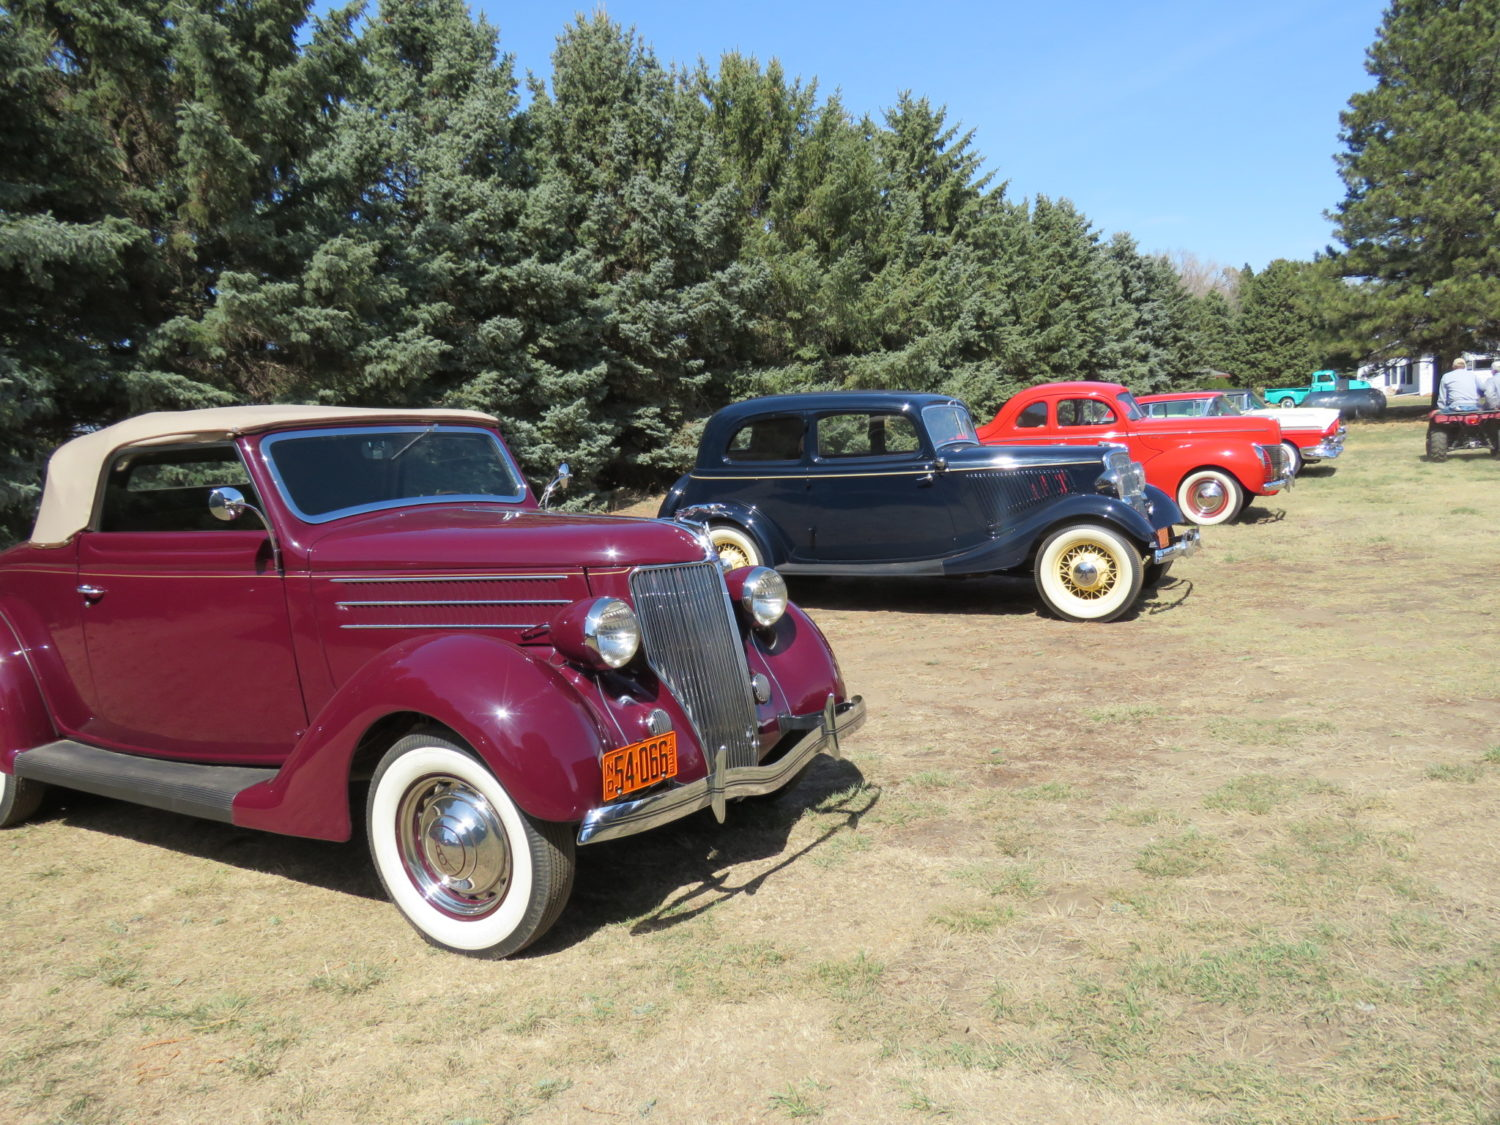 Fabulous Collector Cars, Antique Tractors, Memorabilia & More! The Krinke Collection - image 21